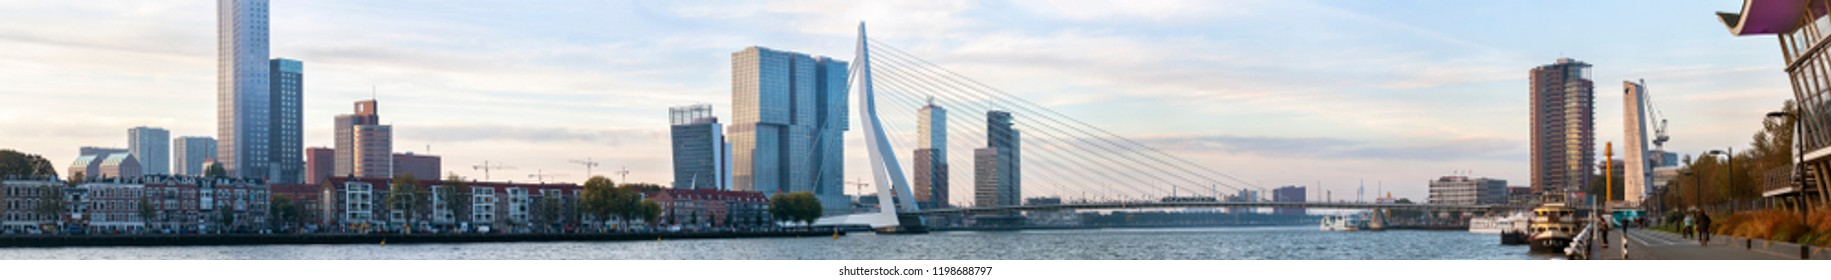 Rotterdam, Netherlands – October 9, 2018: Panorama of Rotterdam awakening in the early morning with the Erasmus bridge connecting the south with the north